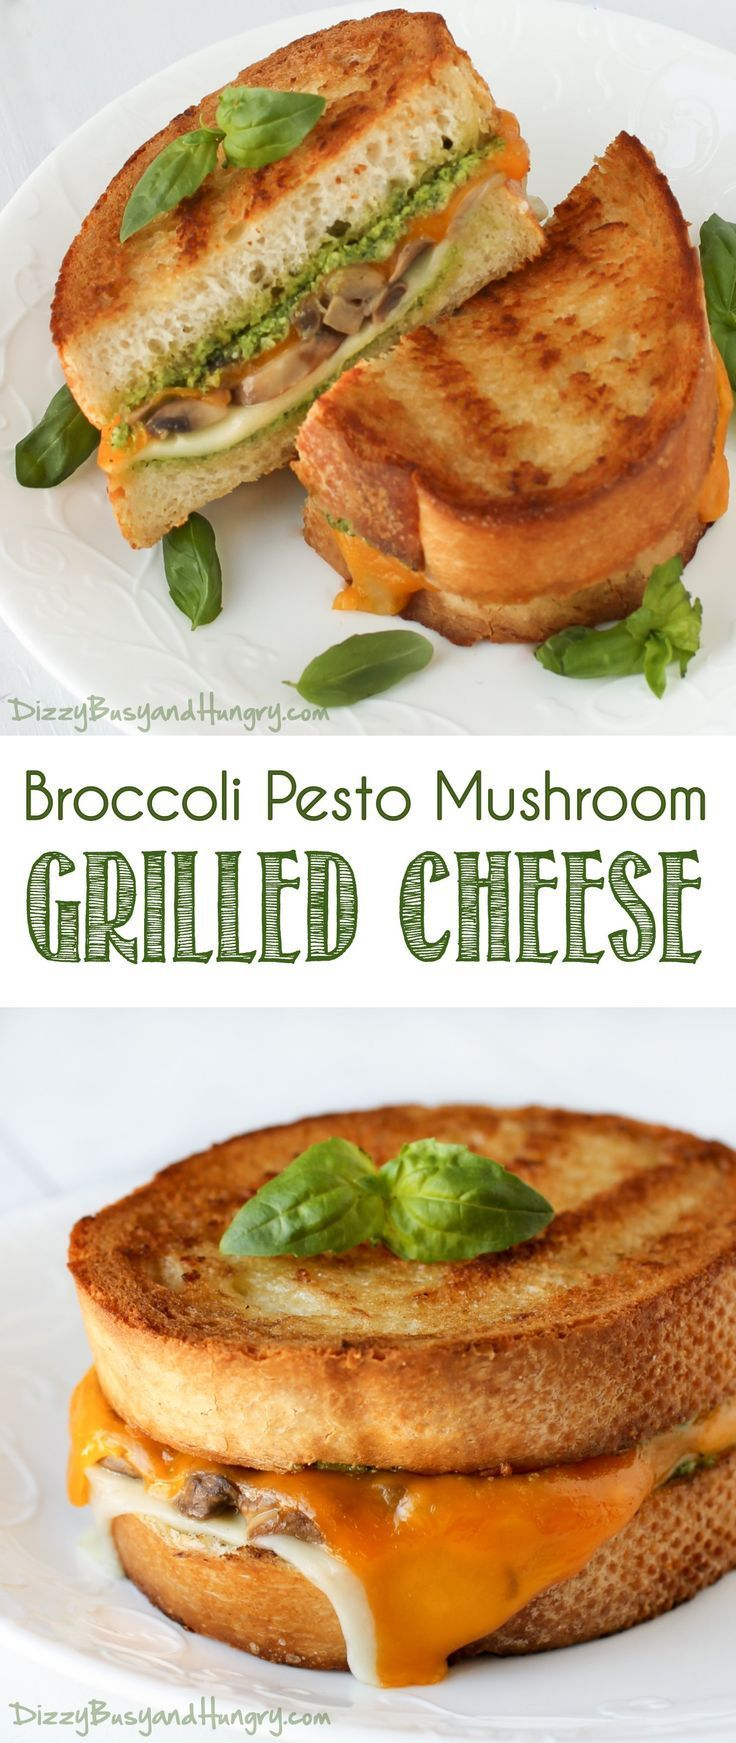 Broccoli Pesto Mushroom Grilled Cheese | http://DizzyBusyandHungry.com - Delicious, hearty grilled cheese sandwich perfect for lunch or a quick and easy dinner!